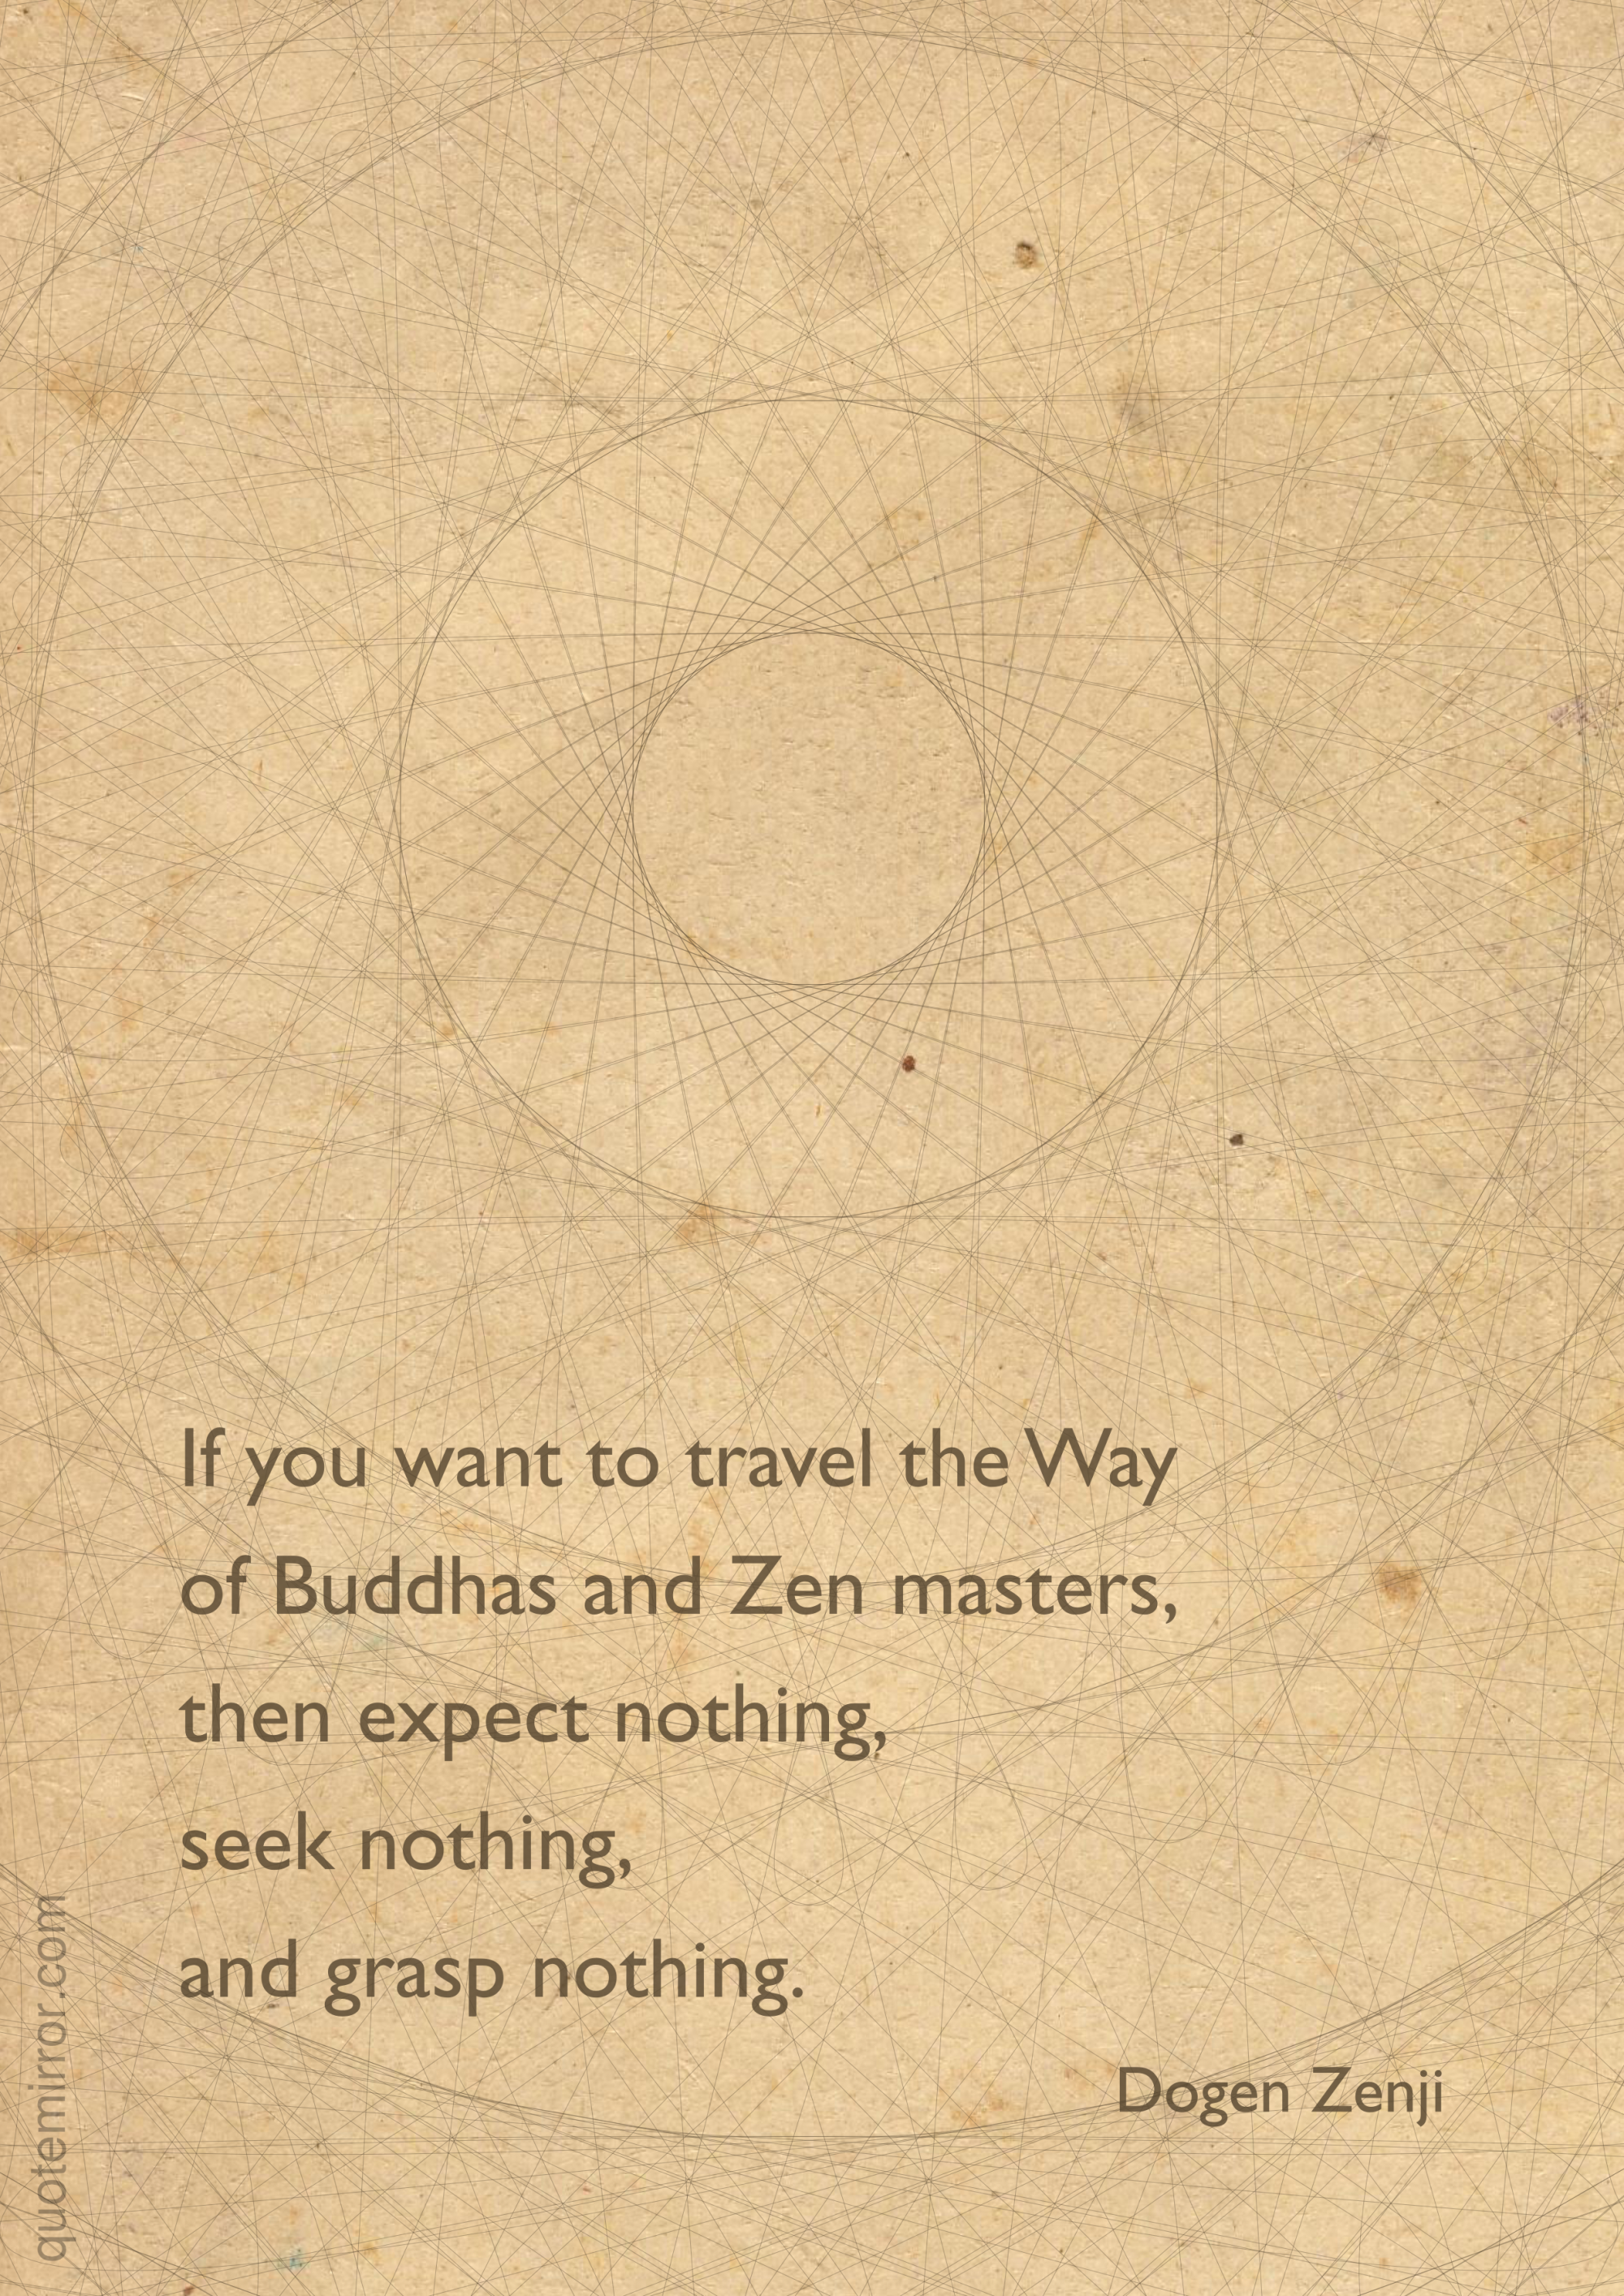 Expect Nothing Seek Nothing And Grasp Nothing Quote Mirror Zen Quotes Buddhist Wisdom Zen Philosophy